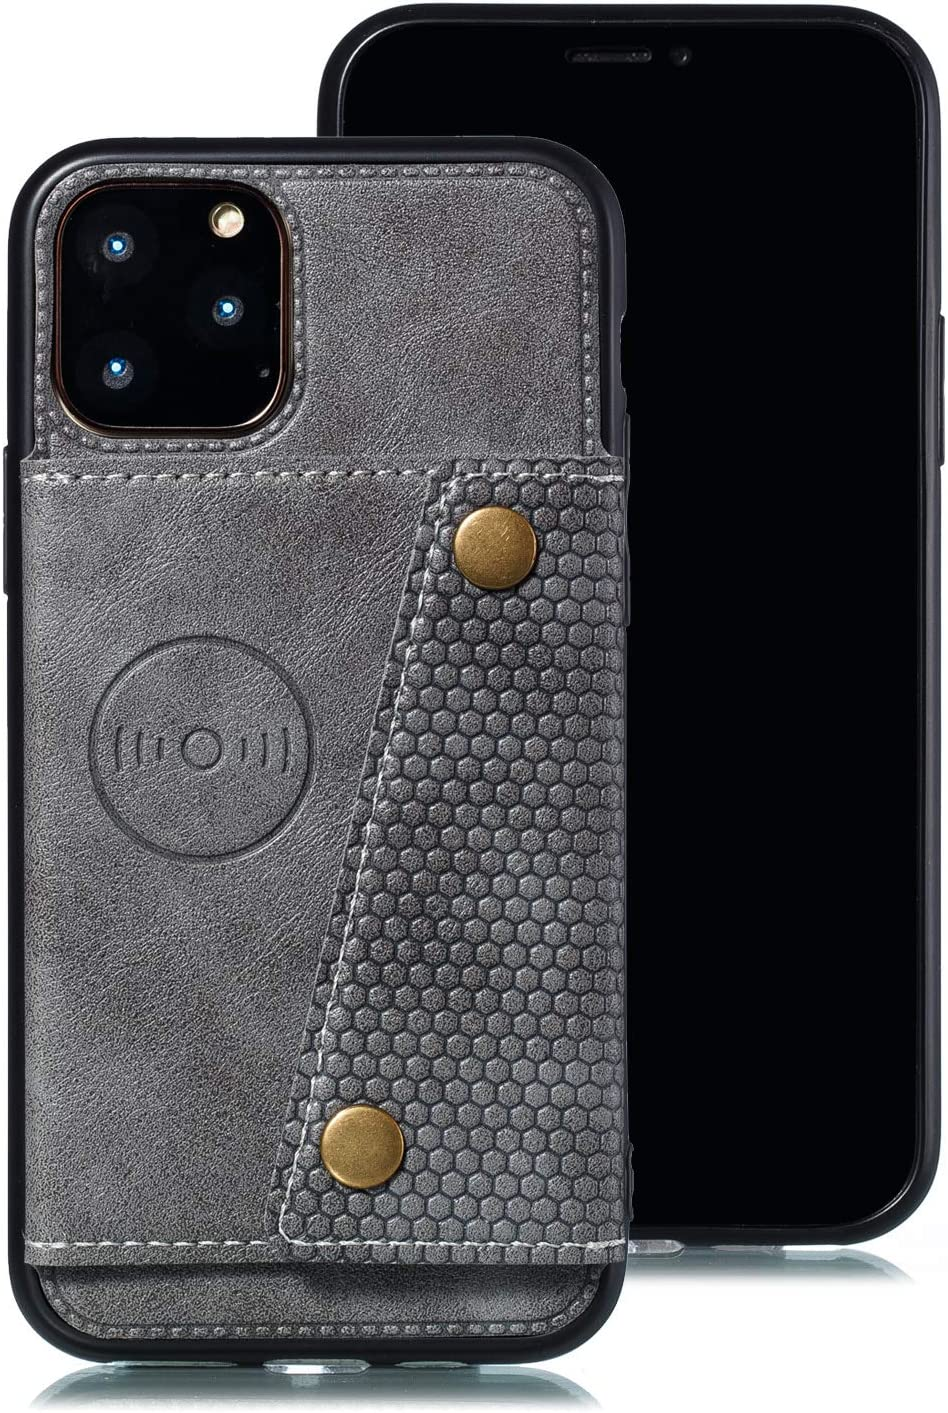 Shinyzone Case for iPhone 11 6.1 inch,Women Men Wallet Case with Card Slot Holder,Flip Leather PU Back Cover with Magnetic Buckle Closure Compatible with Magnetic Car Mount,Grey